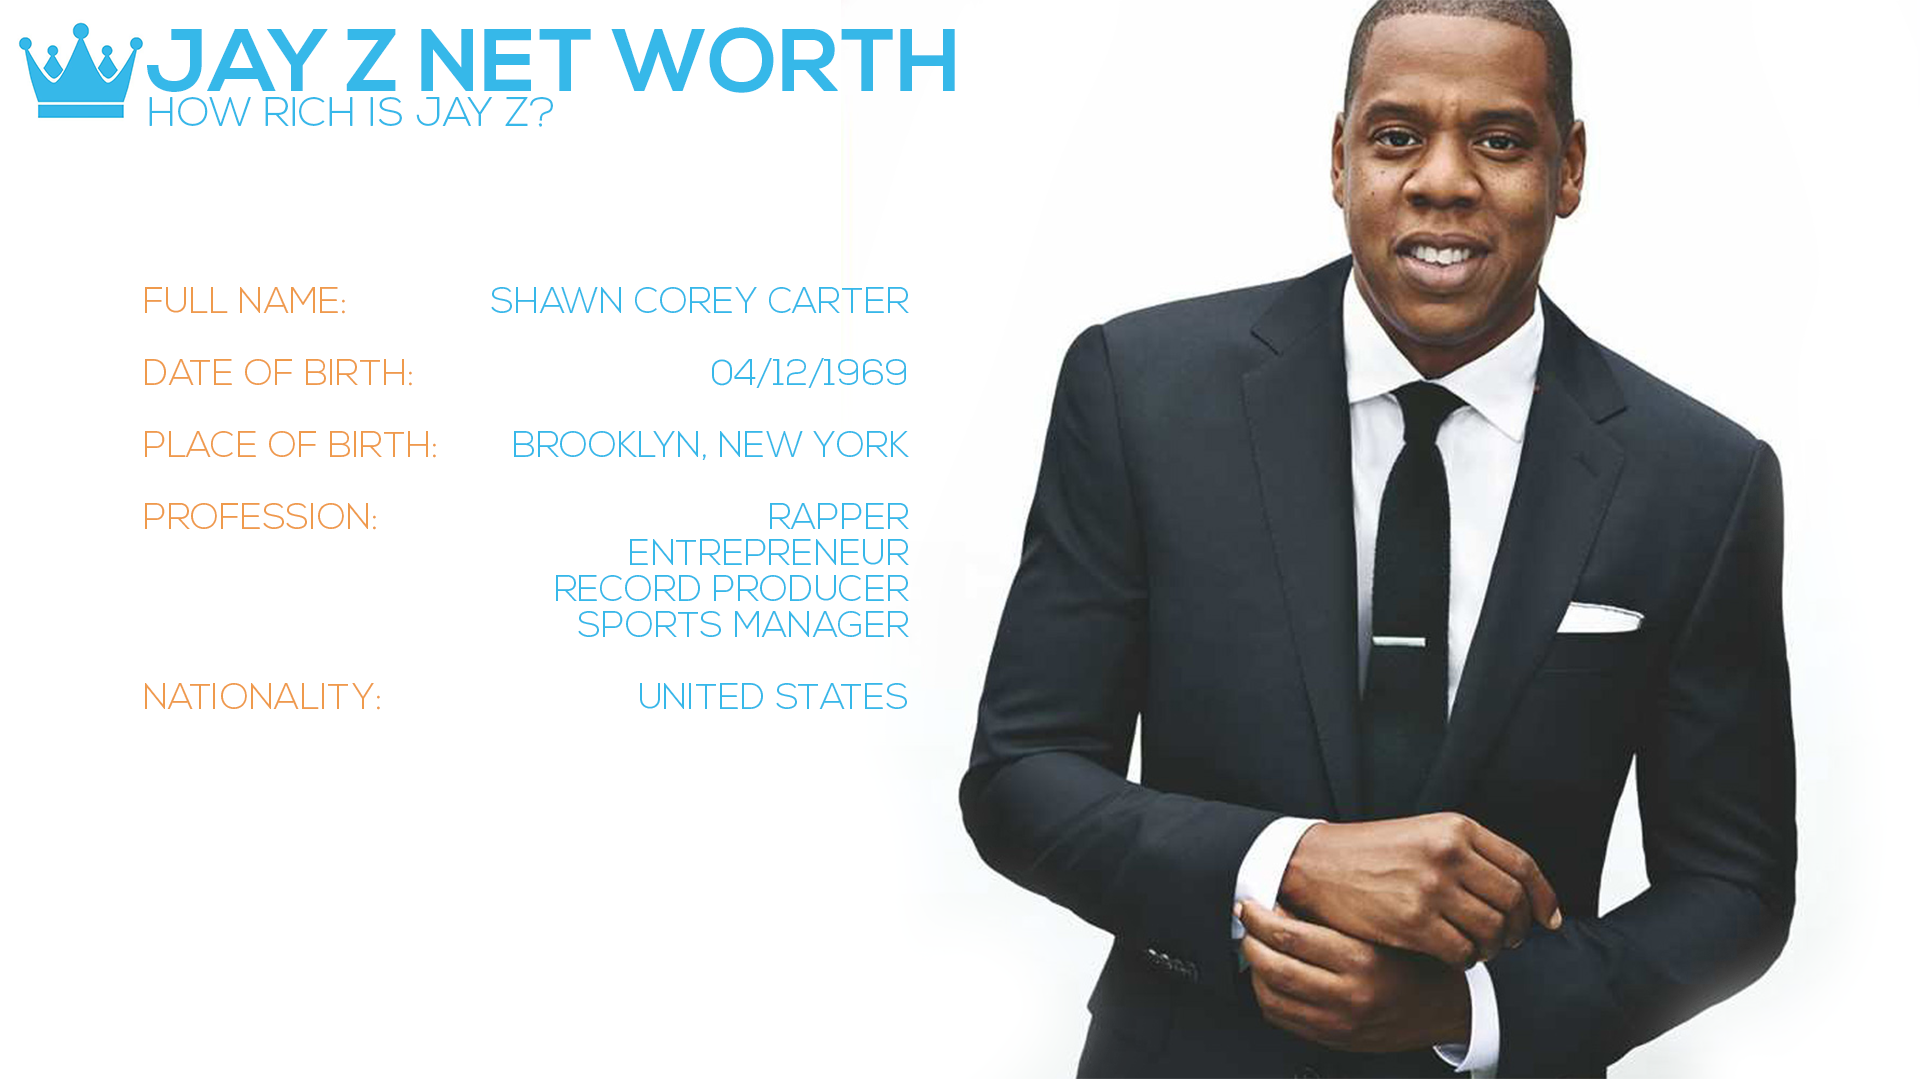 Jay Z Net Worth How rich is Jay Z? What is Jay Z Net Worth? How much money is Jay Z making per year?